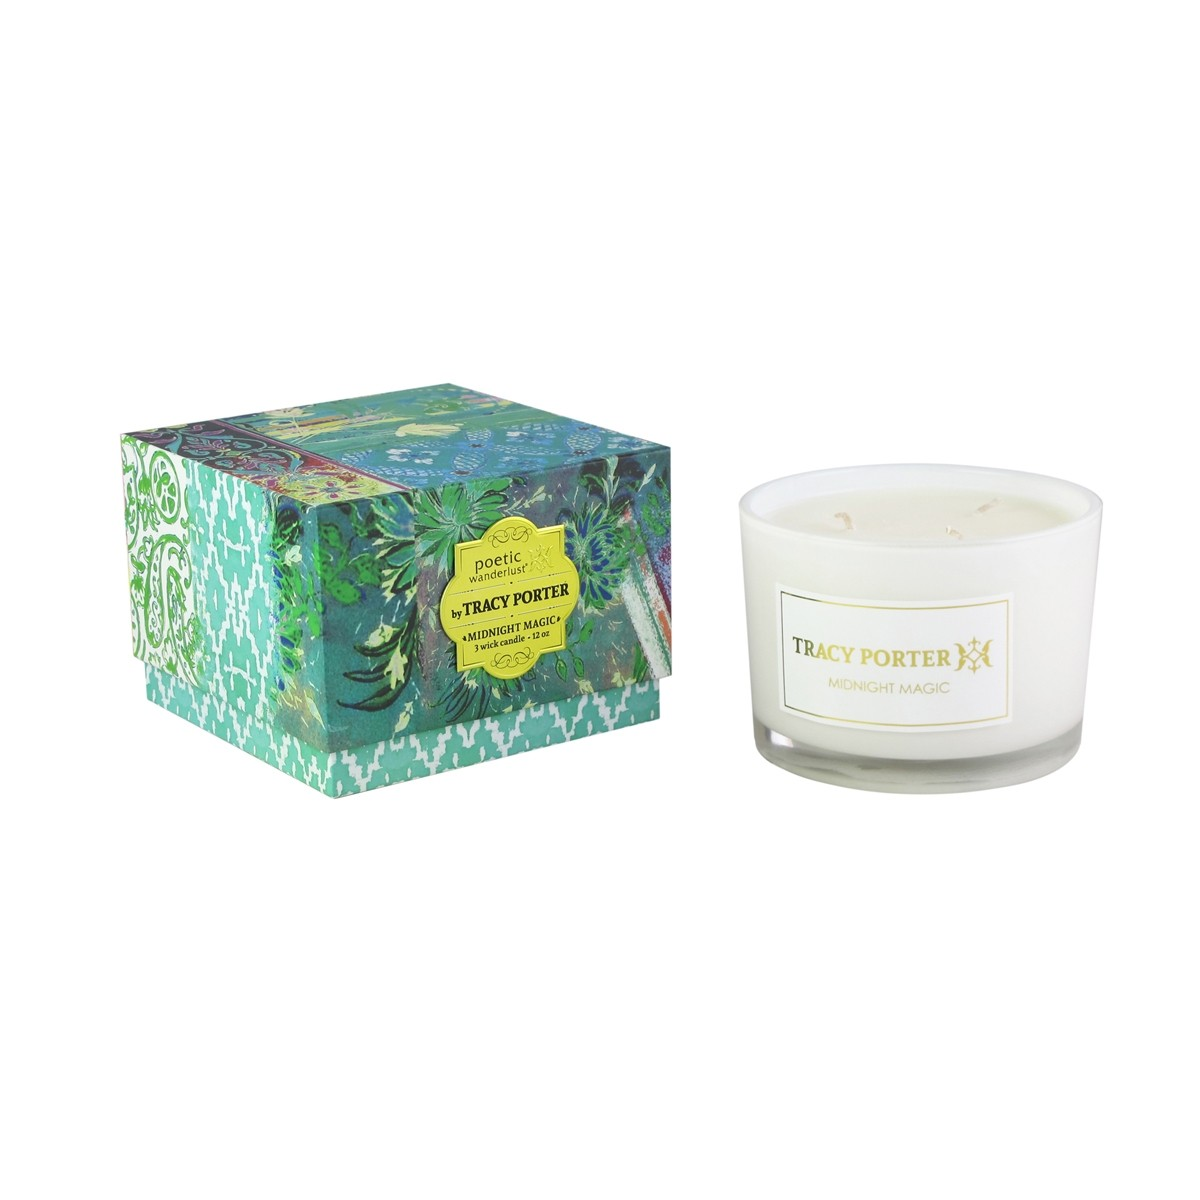 Tracy Porter Midnight Magic 3 Wick Candle 12 Ounces